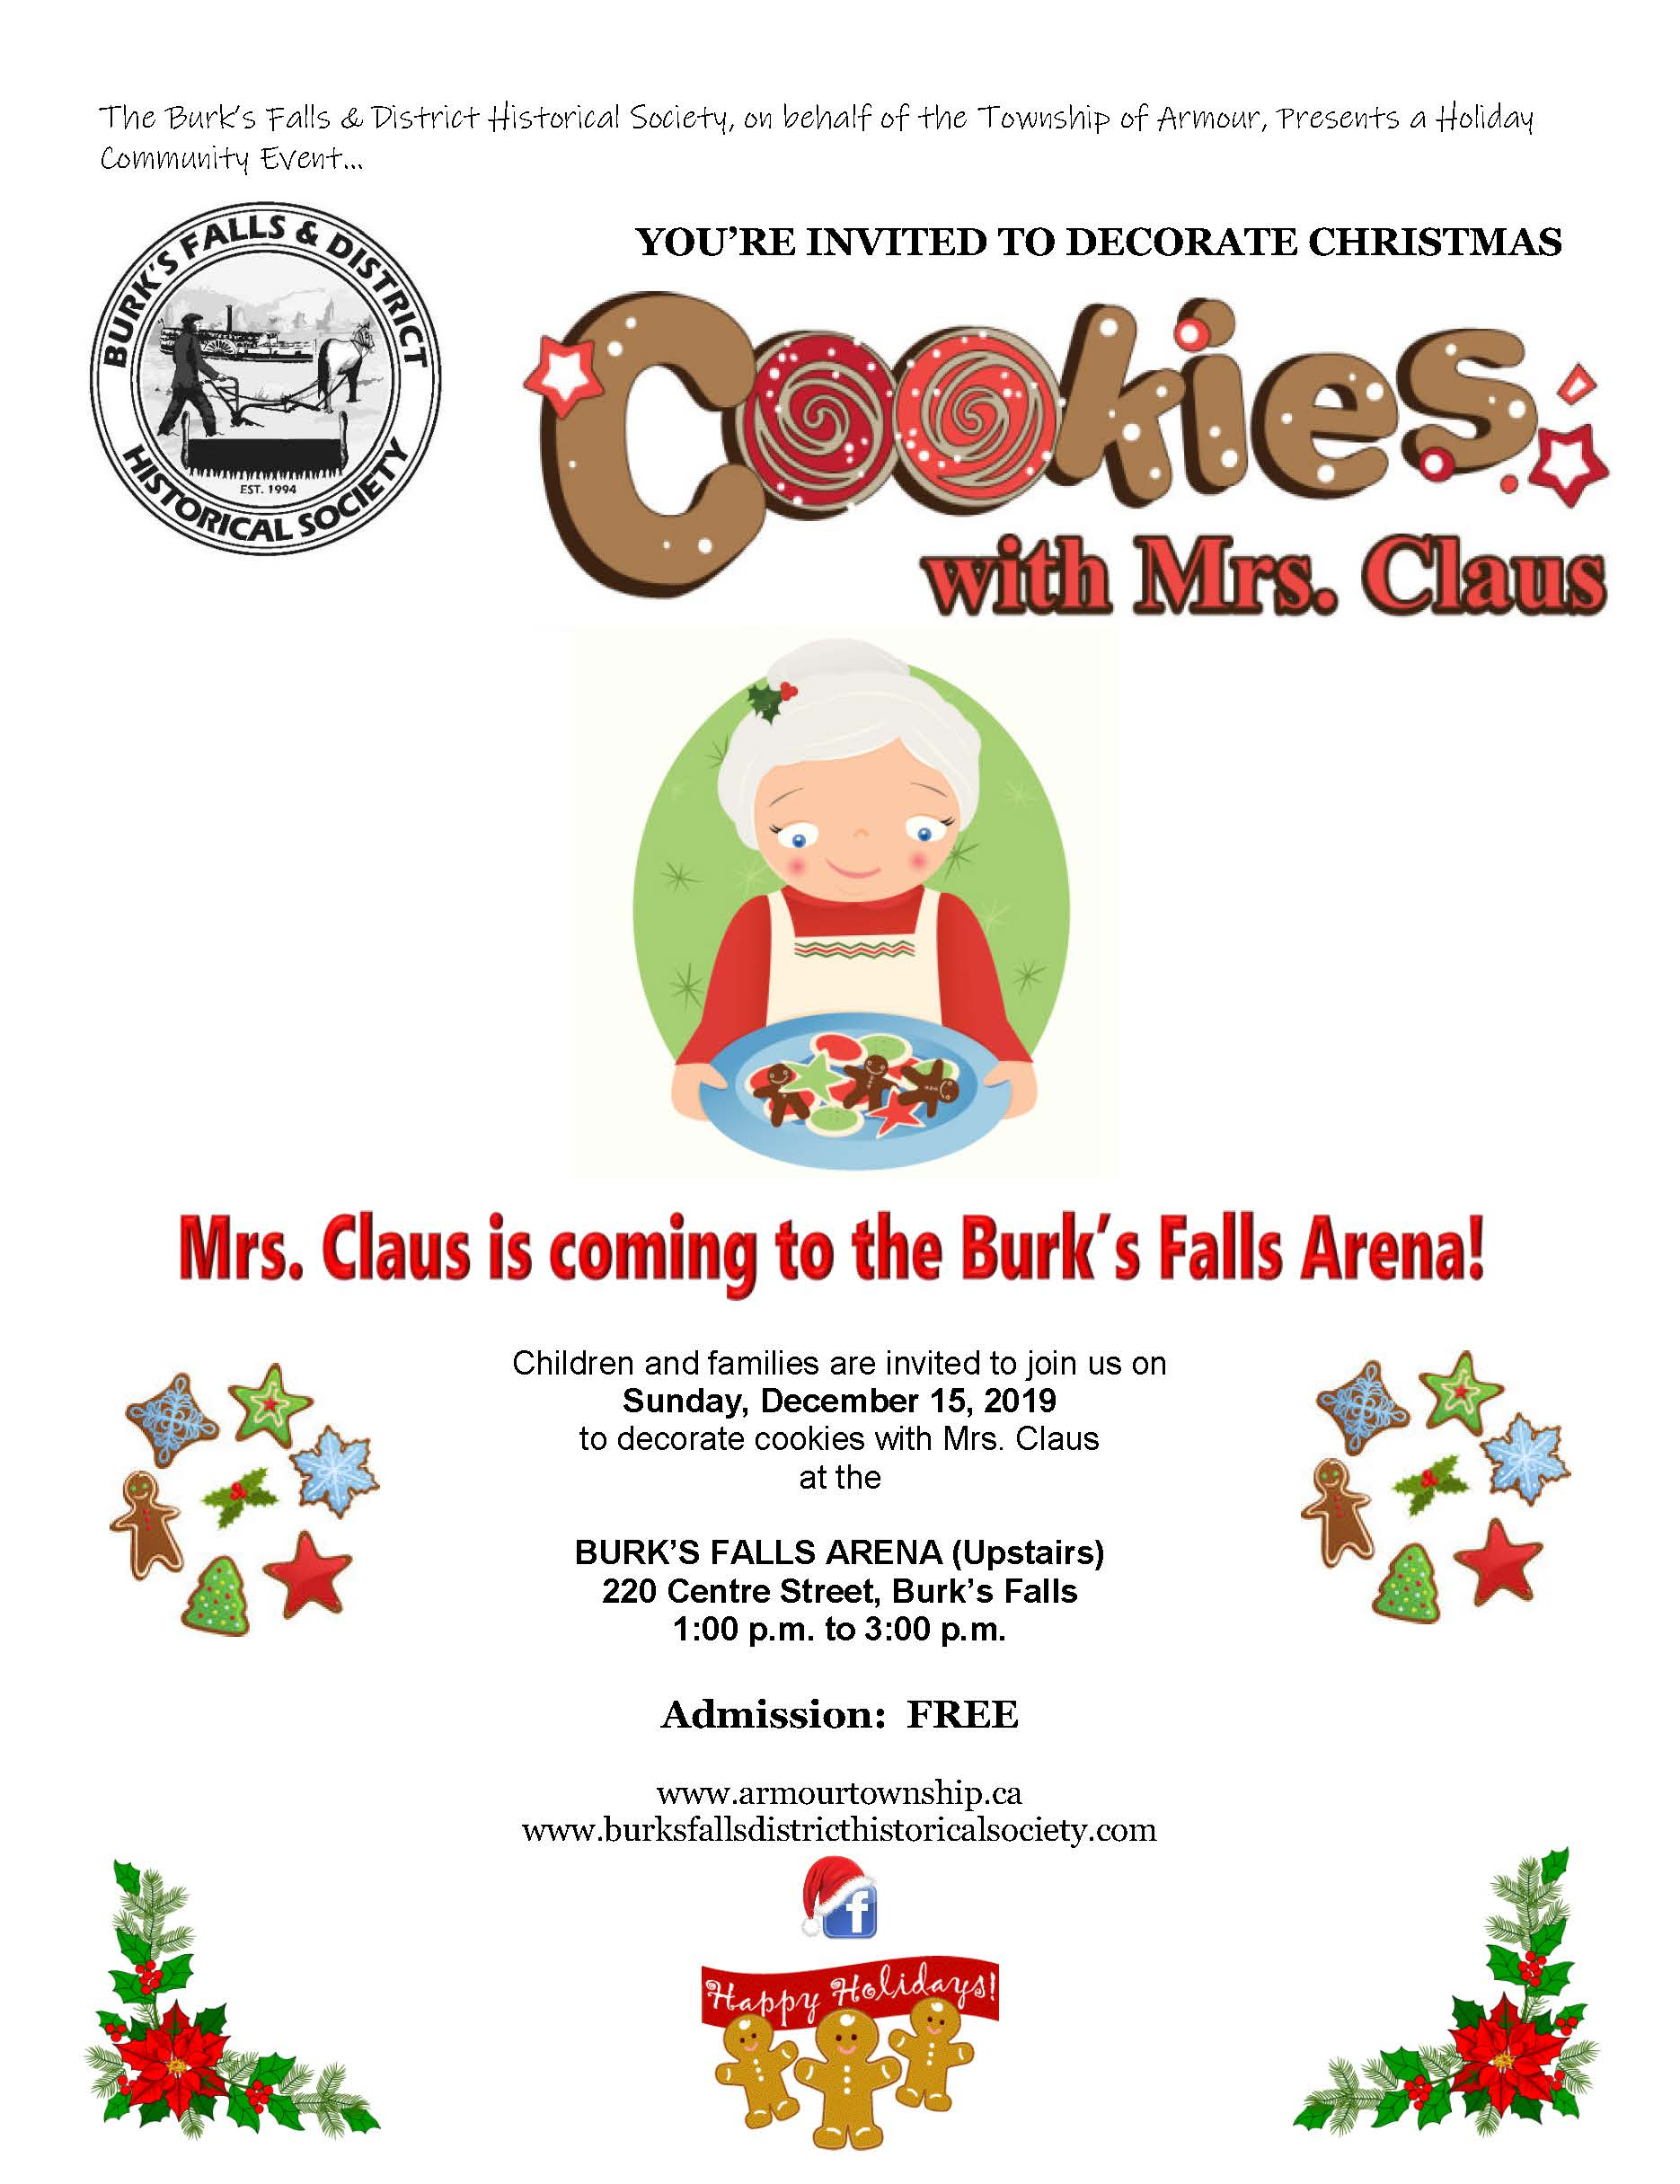 You're Invited to Decorate Cookies with Mrs. Claus